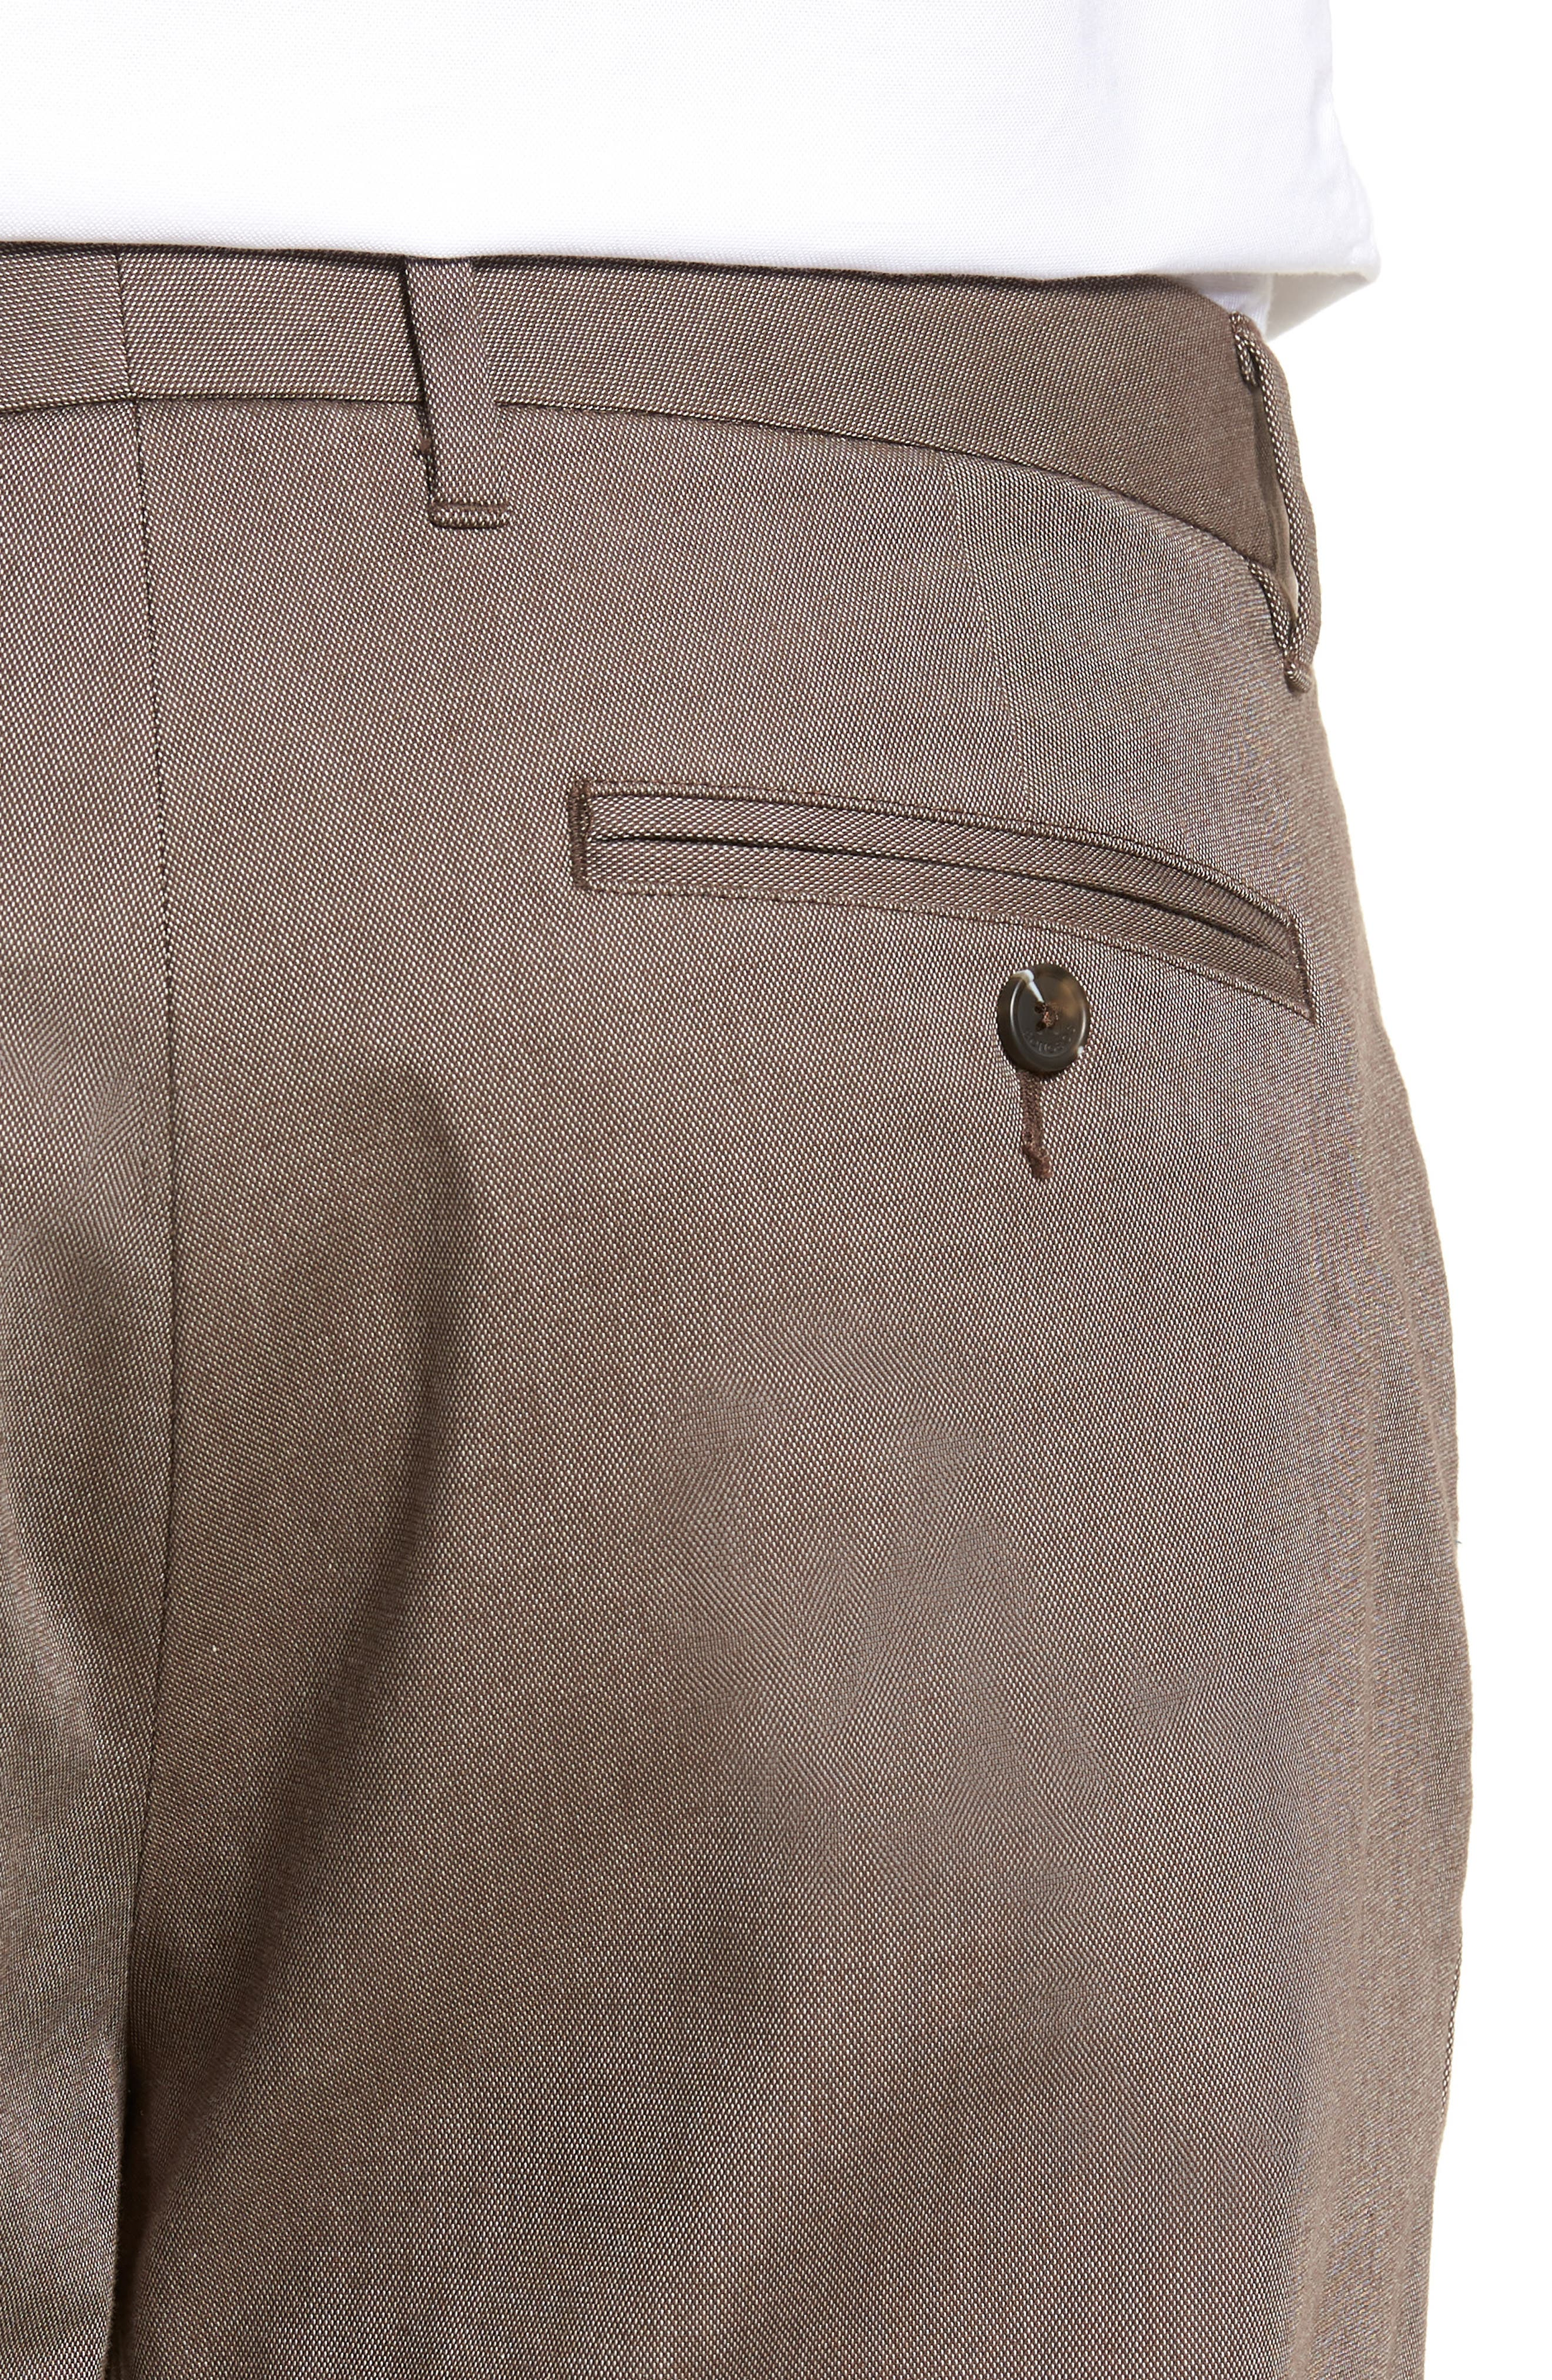 Weekday Warrior Flat Front Stretch Cotton Pants,                             Alternate thumbnail 4, color,                             200